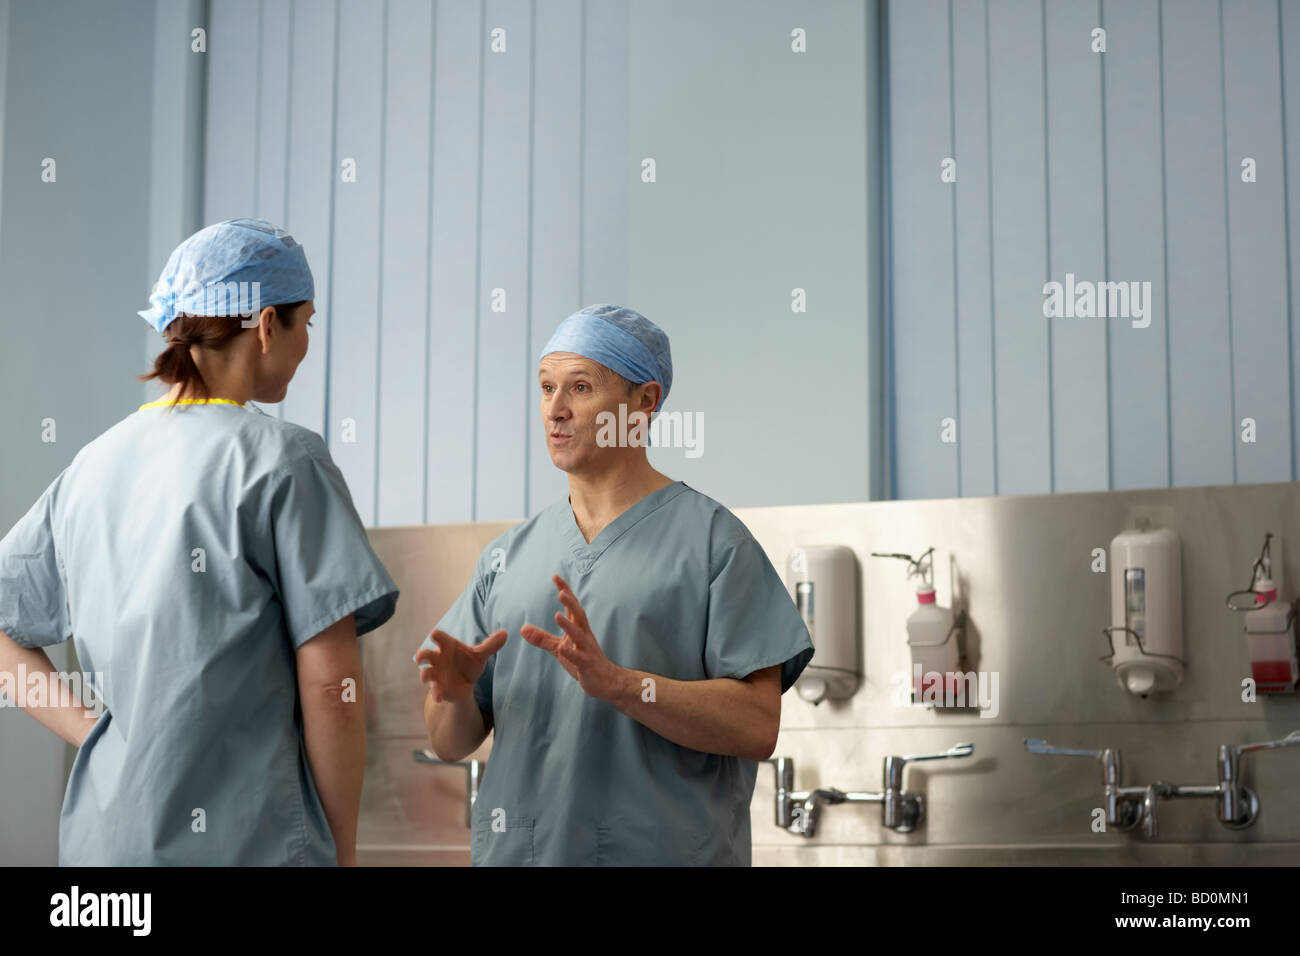 Medical staff in scrubs in discussion - Stock Image